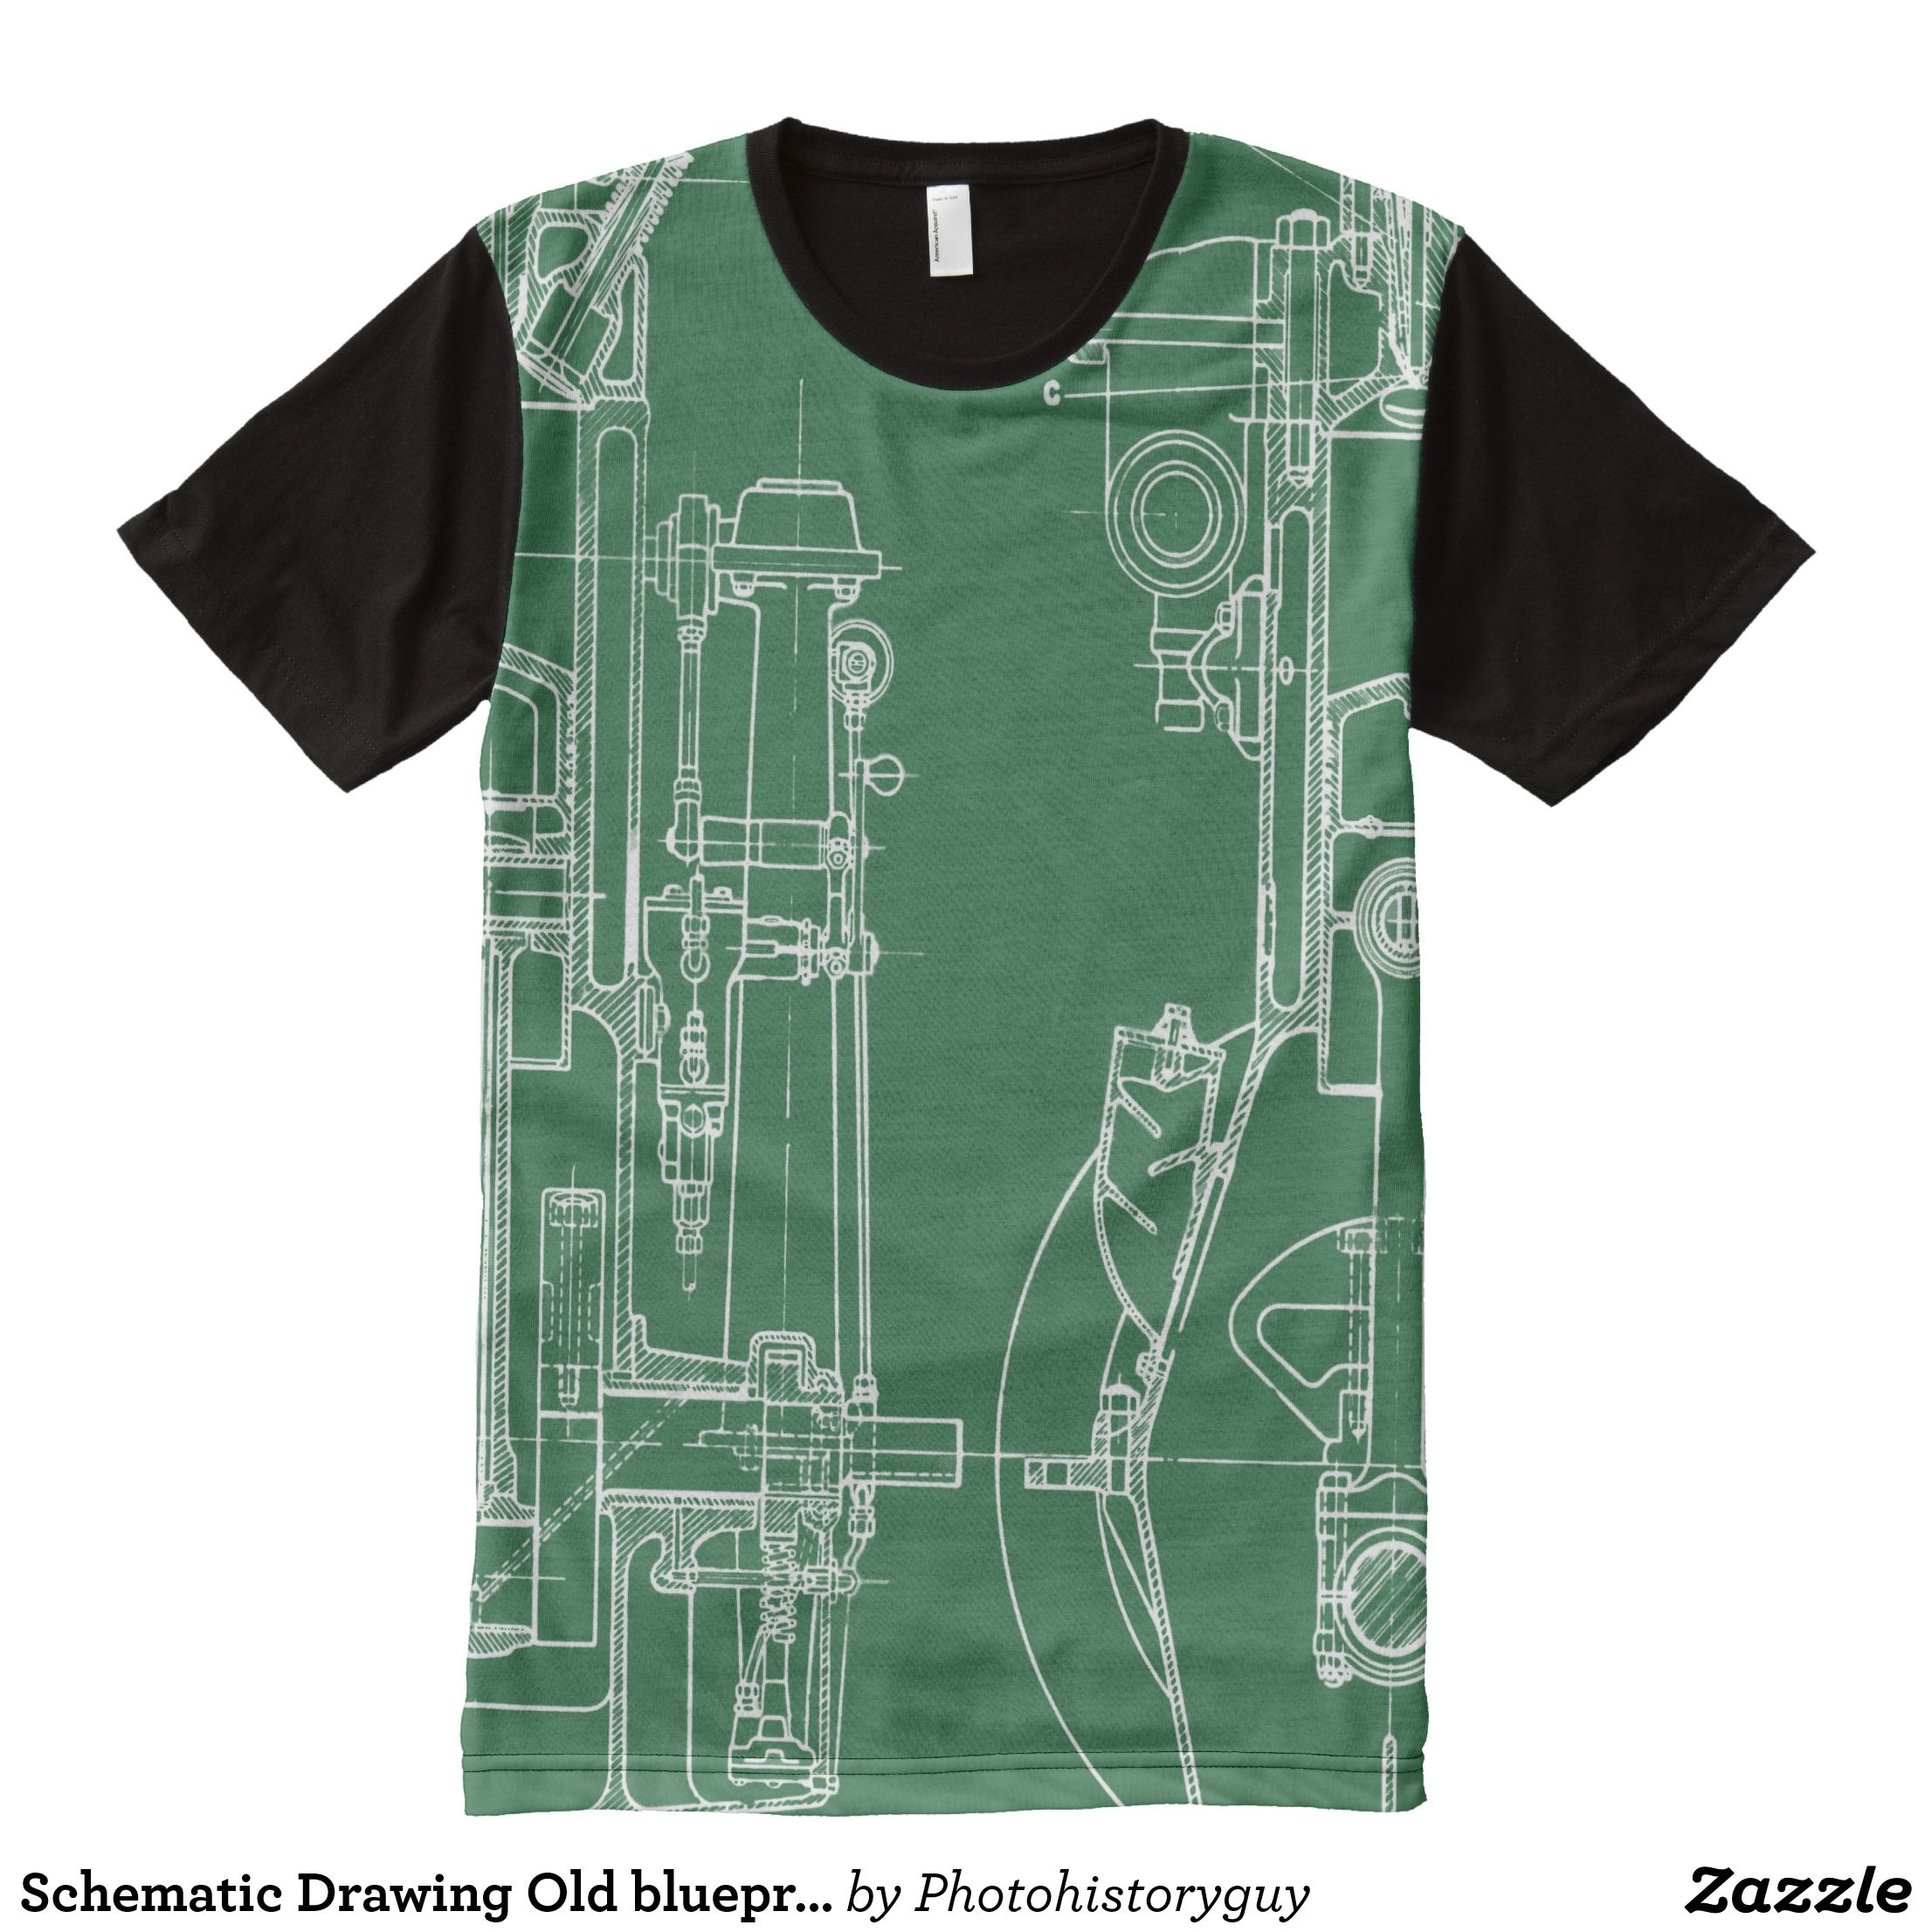 Schematic drawing old blueprint mechanical drawing all over print schematic drawing old blueprint mechanical drawing all over print shirt visually stunning graphic t shirts by talented fashion designers shirts malvernweather Choice Image